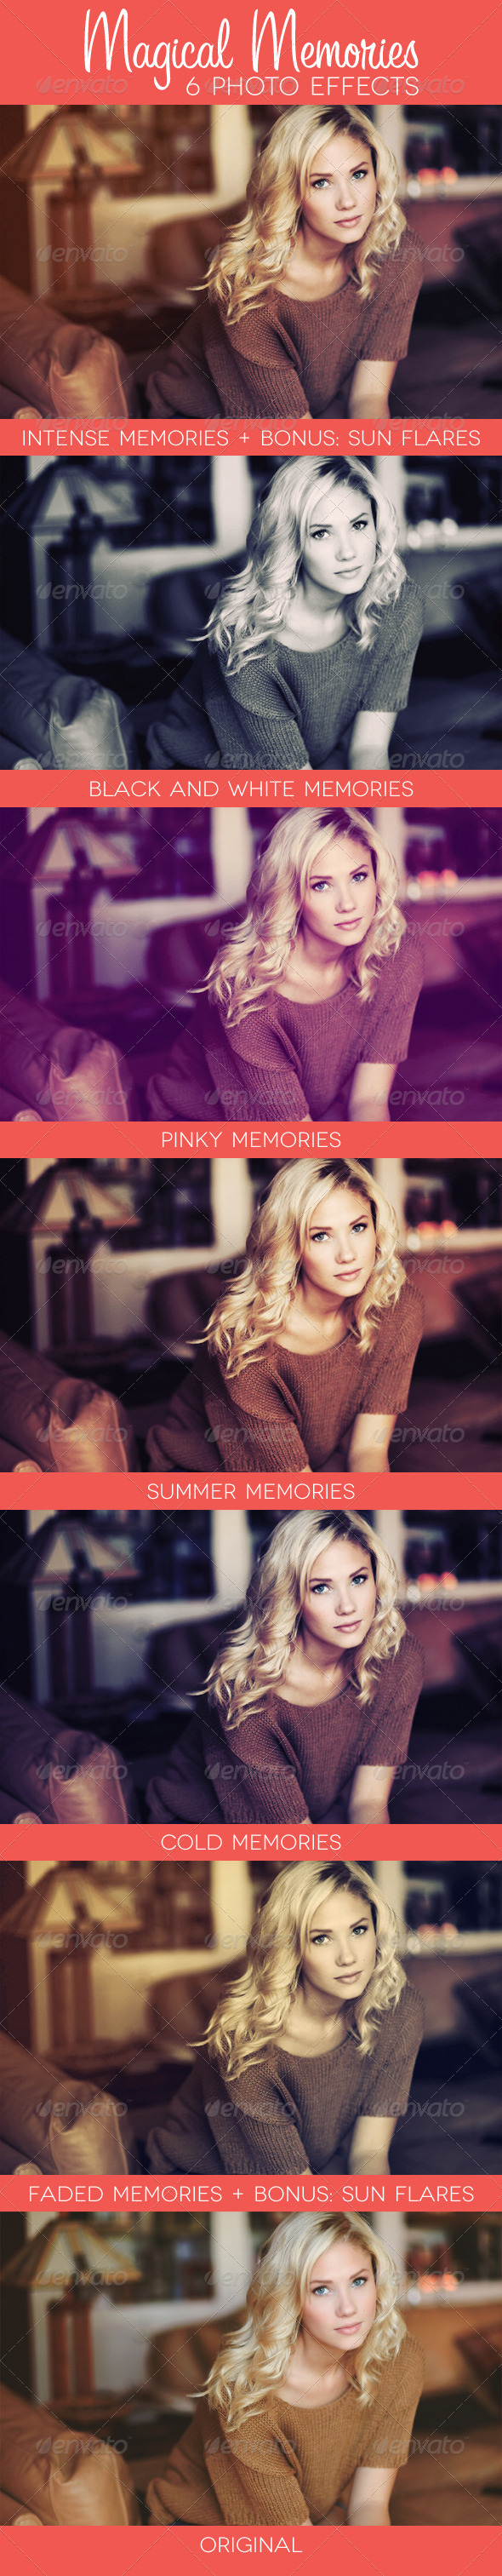 Magical Memories 6 Premium Photo Effects GraphicRiver - Add-ons -  Photoshop  Actions  Photo Effects 2762115